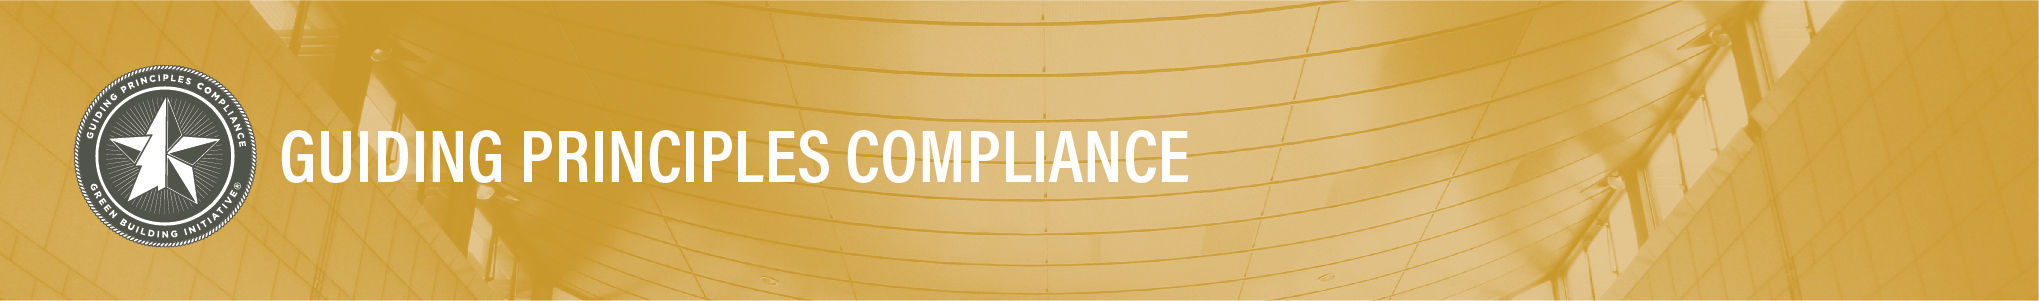 Guiding Principles Compliance (General)